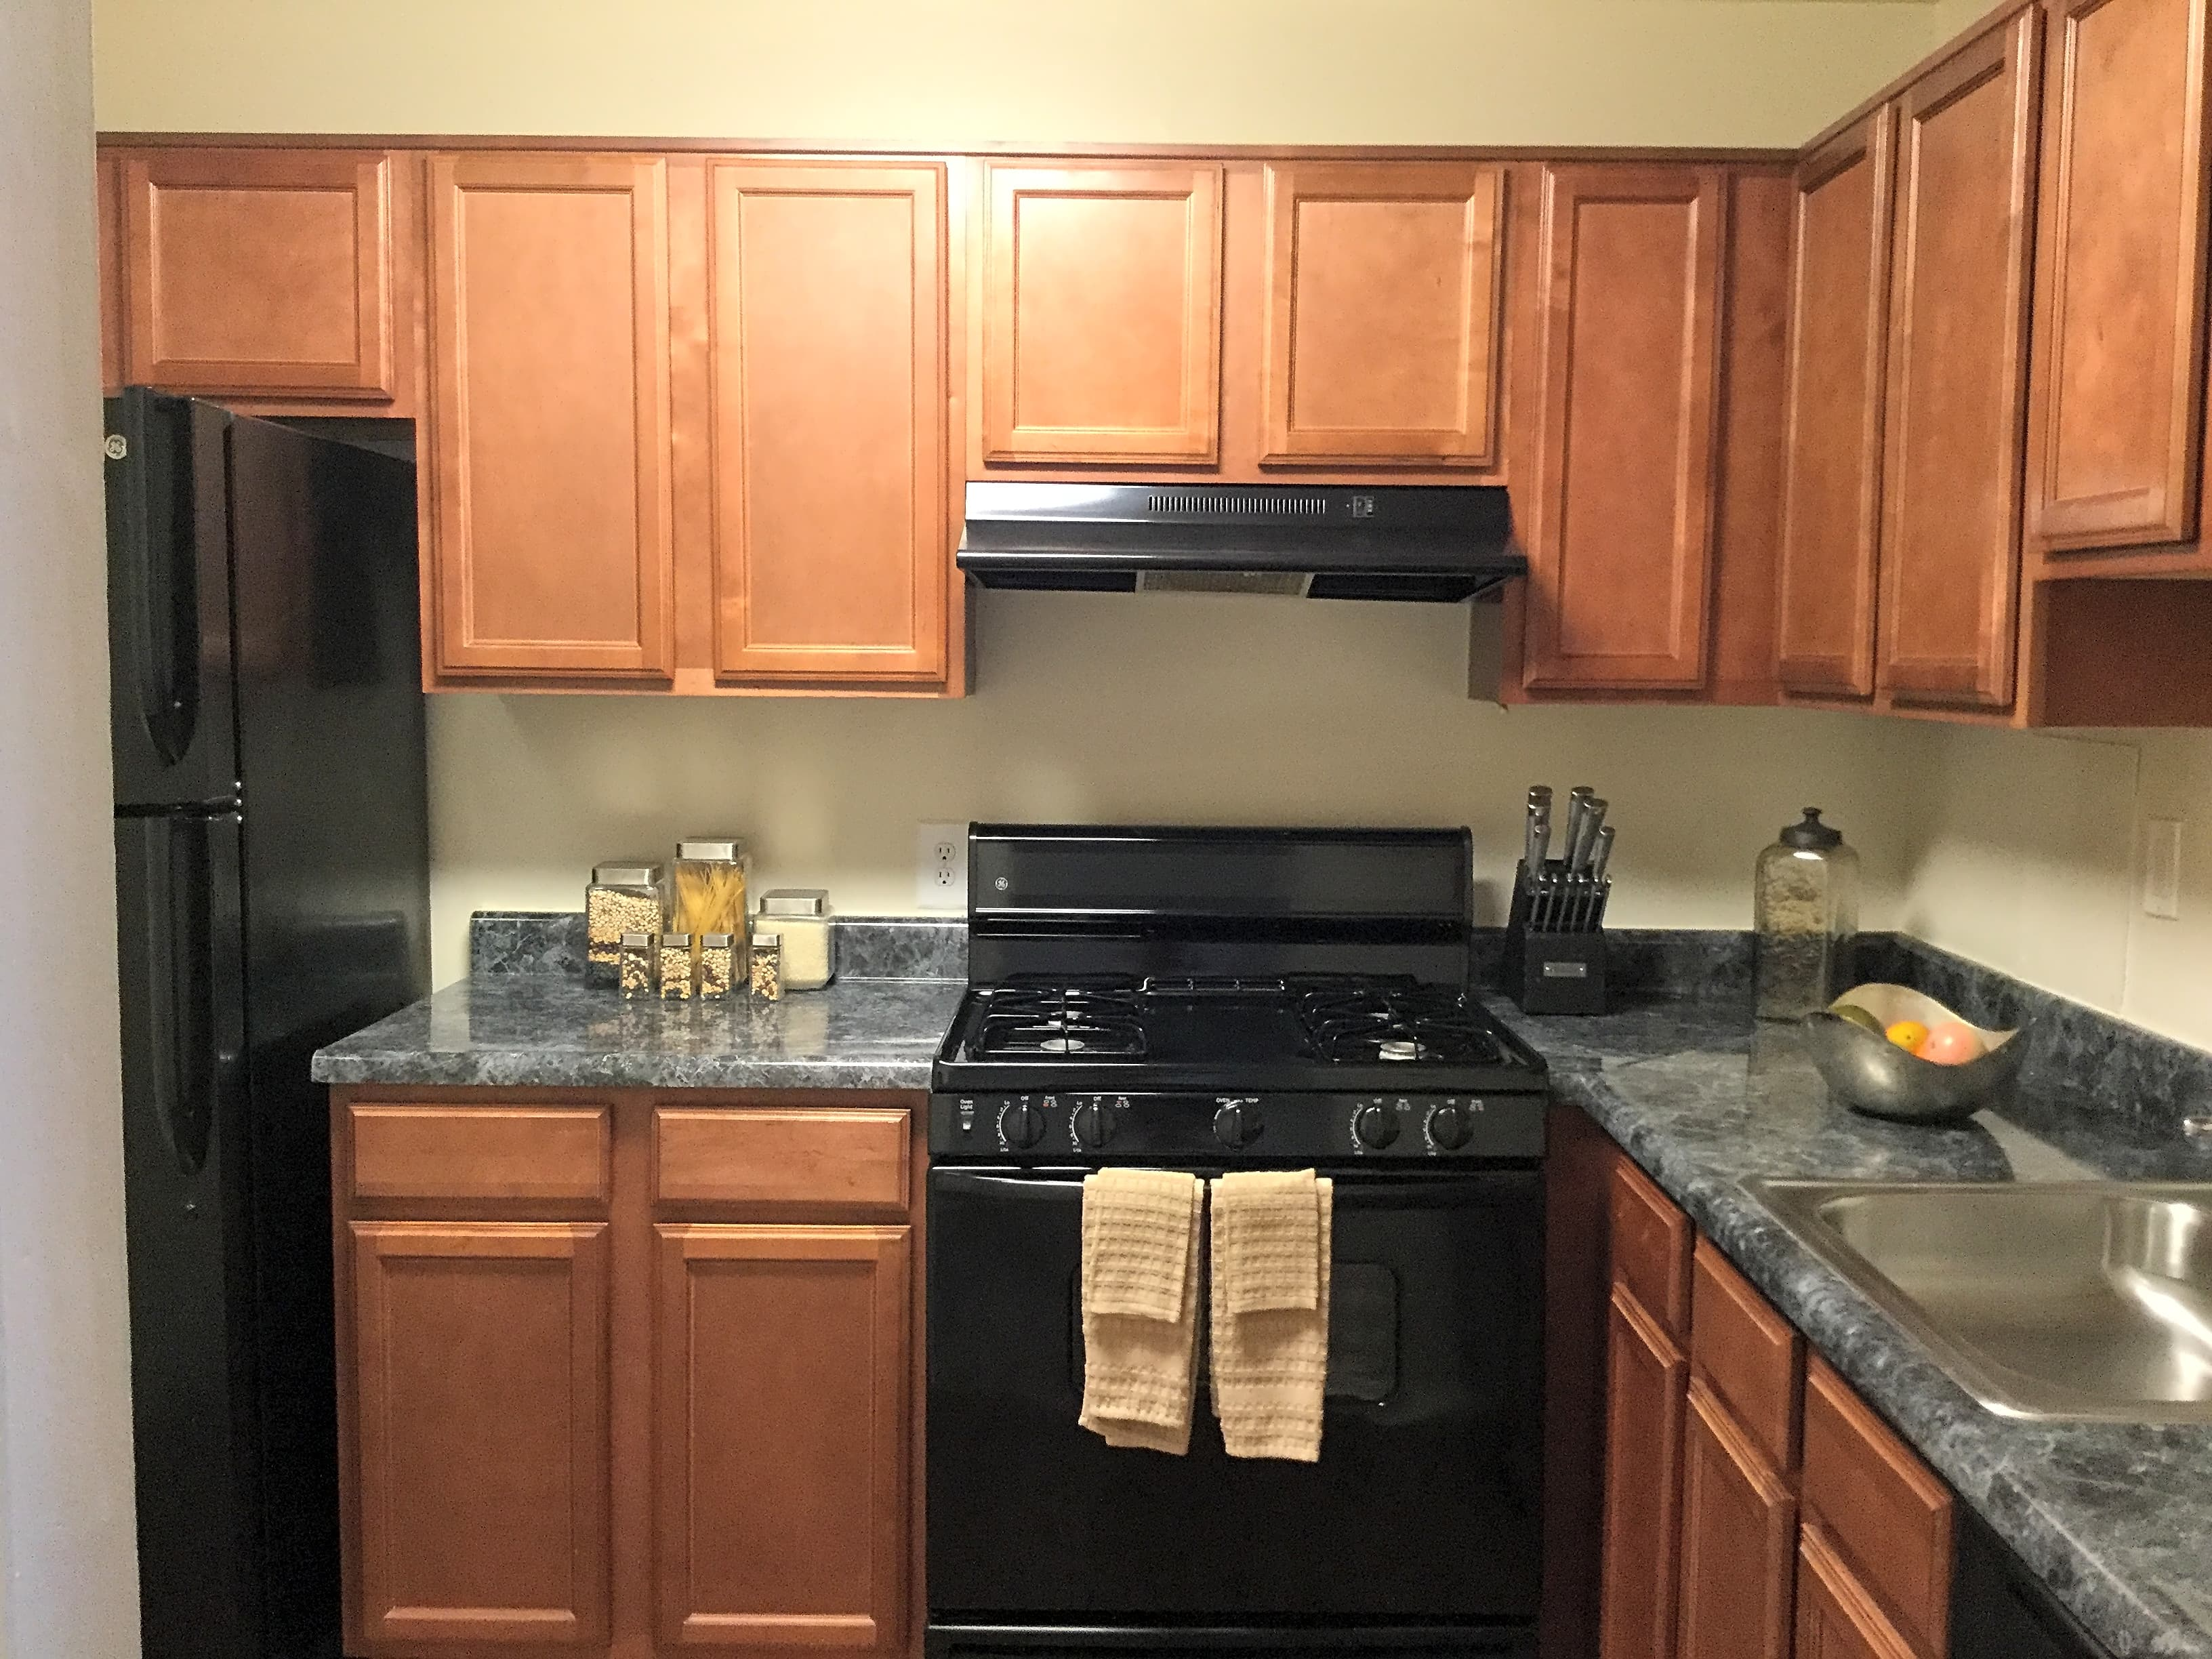 Towson Woods Apartments - Towson, MD 21204